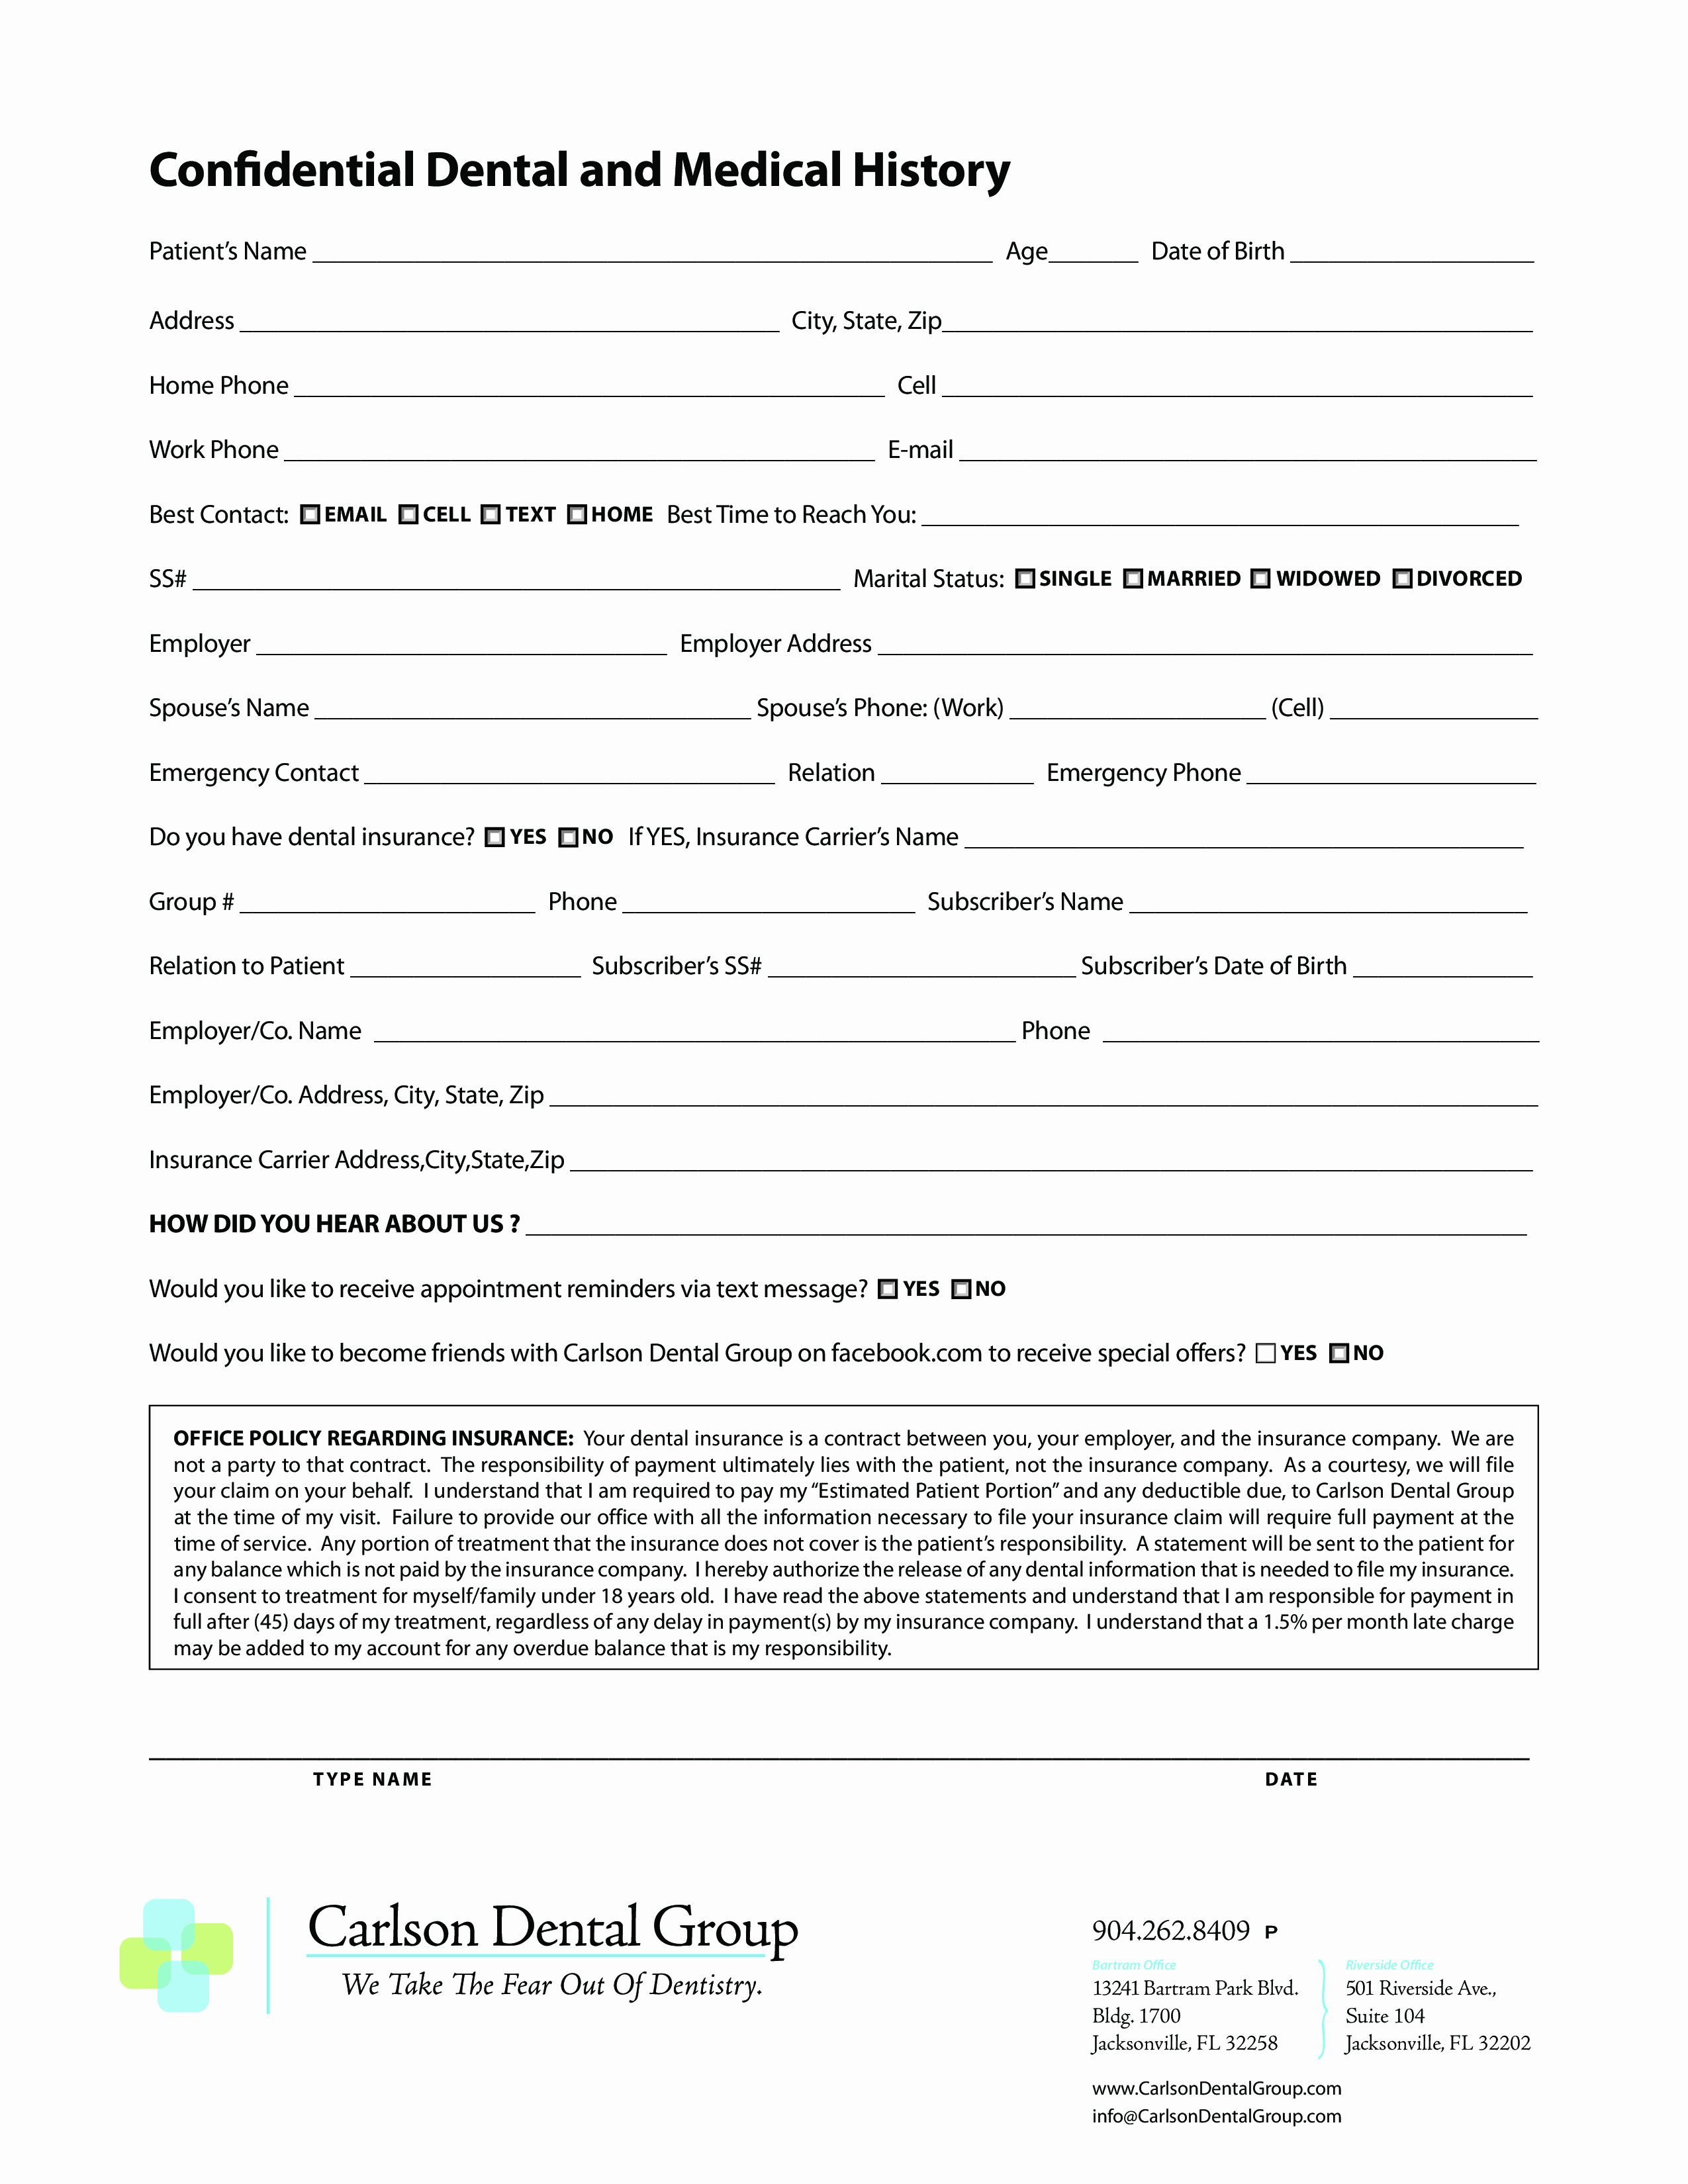 Medical History Forms Health History Form Click On To View With Medical History Form Health History Health History Form Family Health History